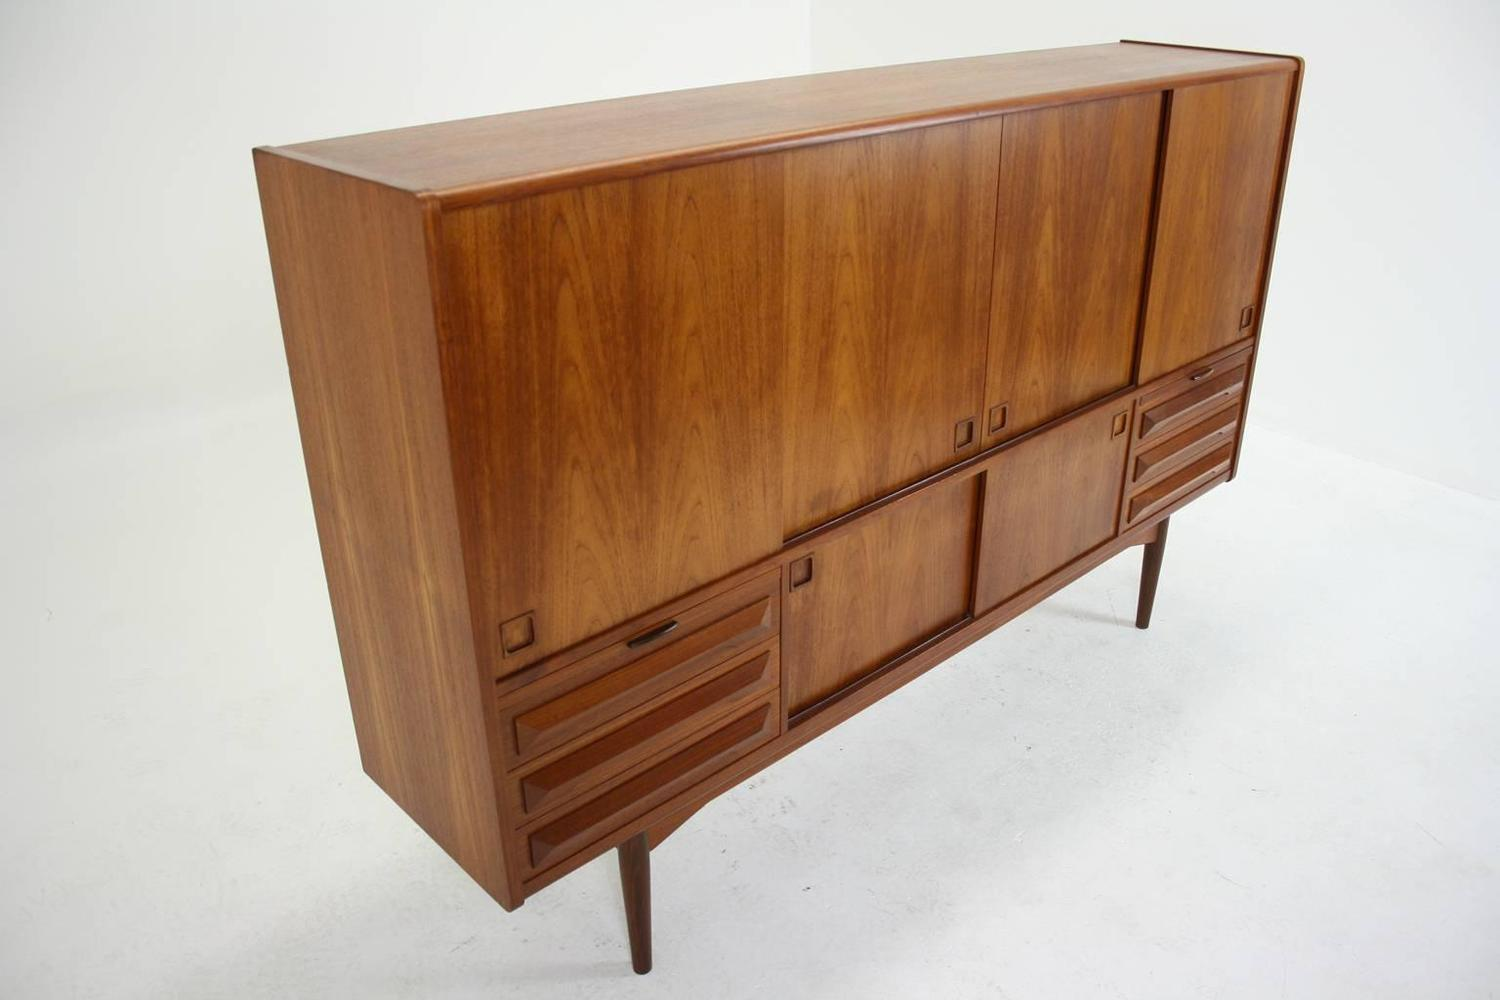 danish mid century modern teak sideboard or buffet at 1stdibs. Black Bedroom Furniture Sets. Home Design Ideas